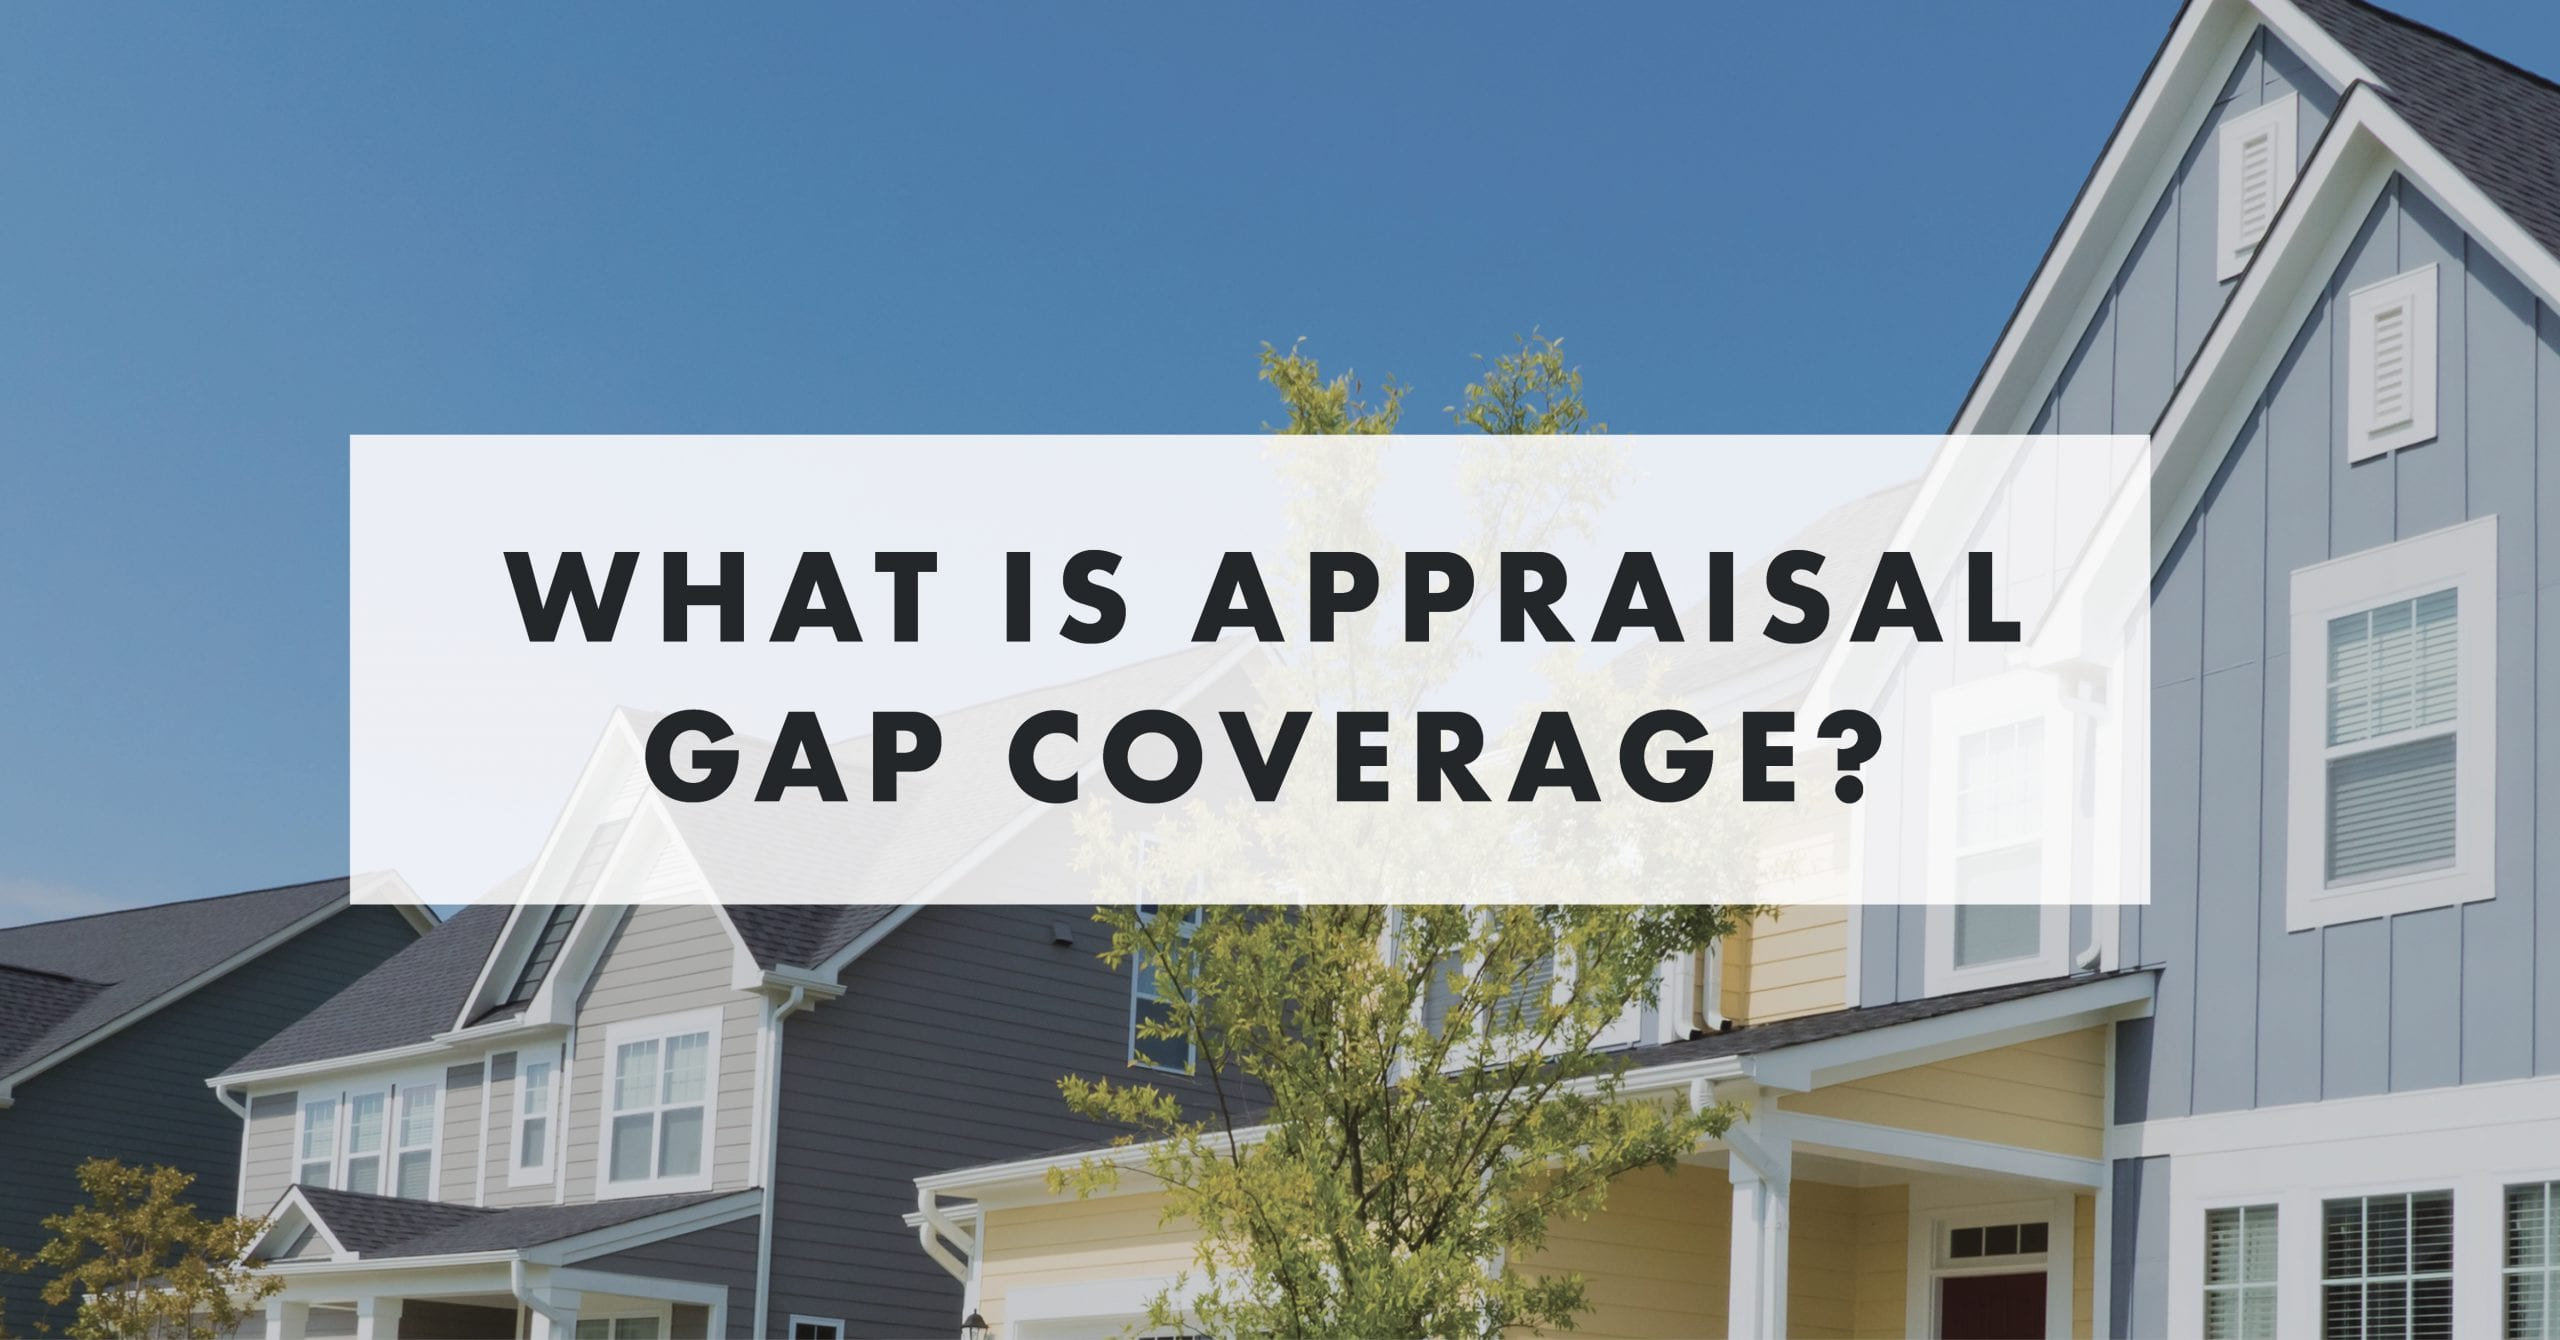 Appraisal Gap Coverage